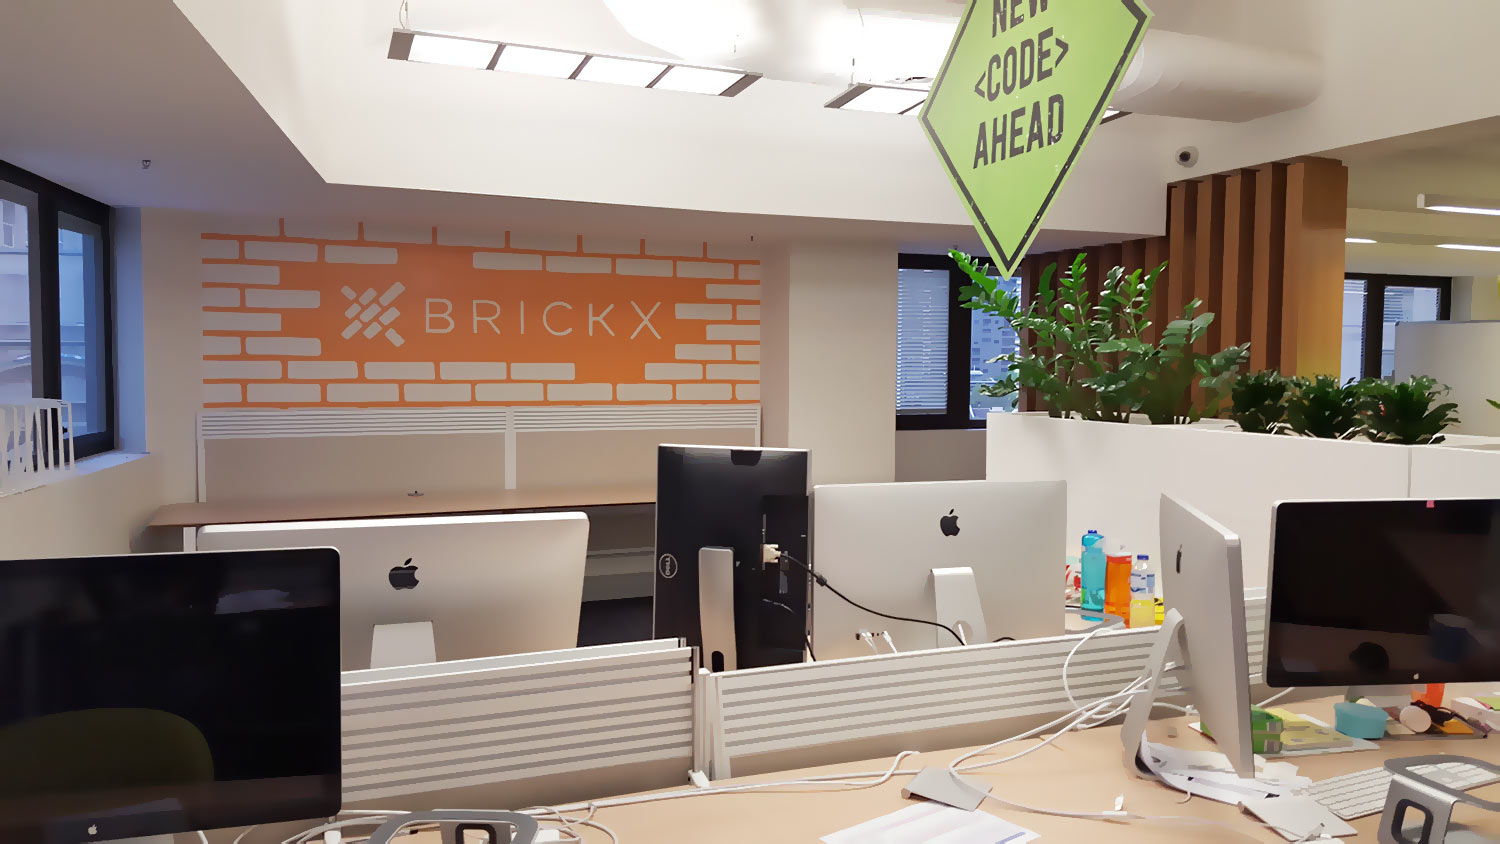 the-art-of-wall-brick-x-office-wall-mural